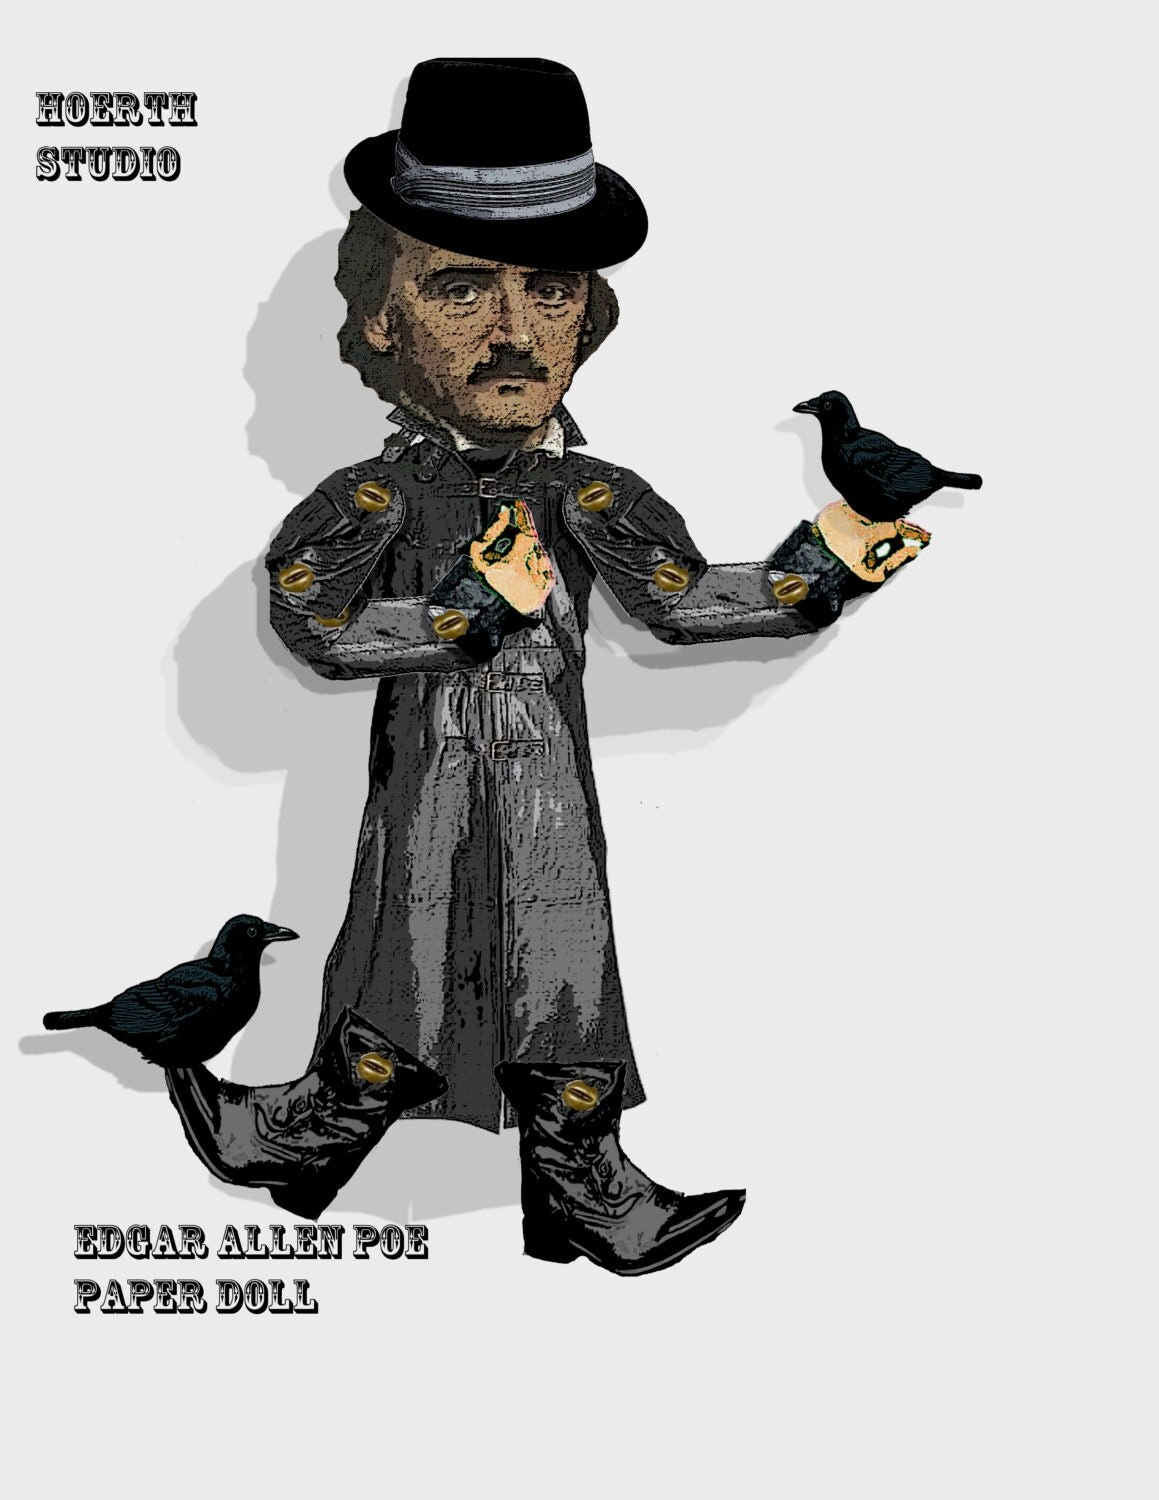 thesis on edgar allen poe Sources and outline thesis: edgar allan poe went through hardships and was very misfortunate, and this led to some very dark poetry that is known around the world now.